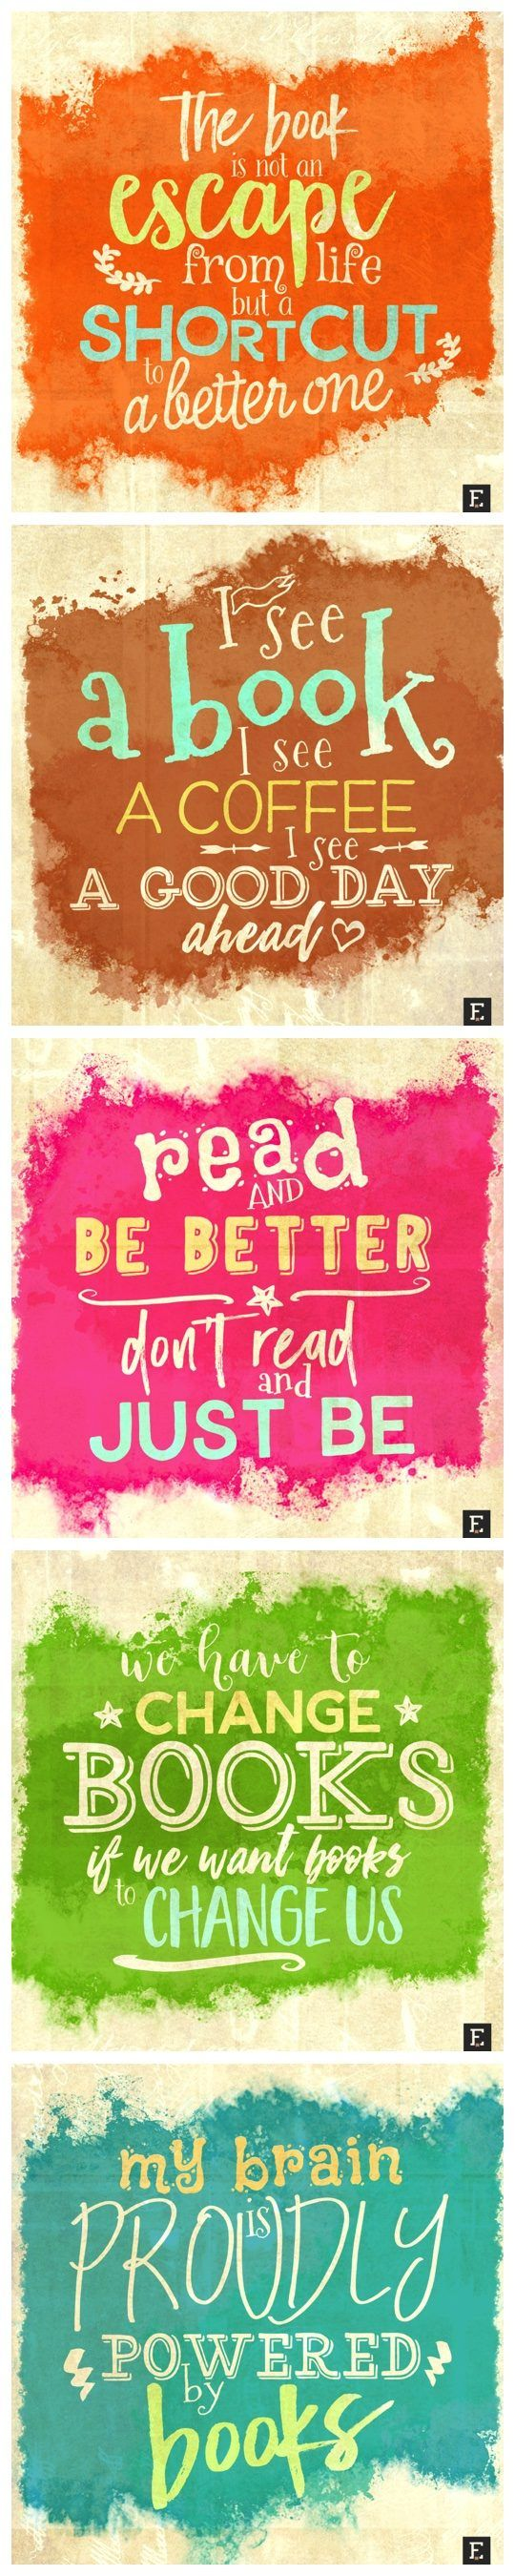 A couple of new quotes about #books #libraries #reading. Enjoy!